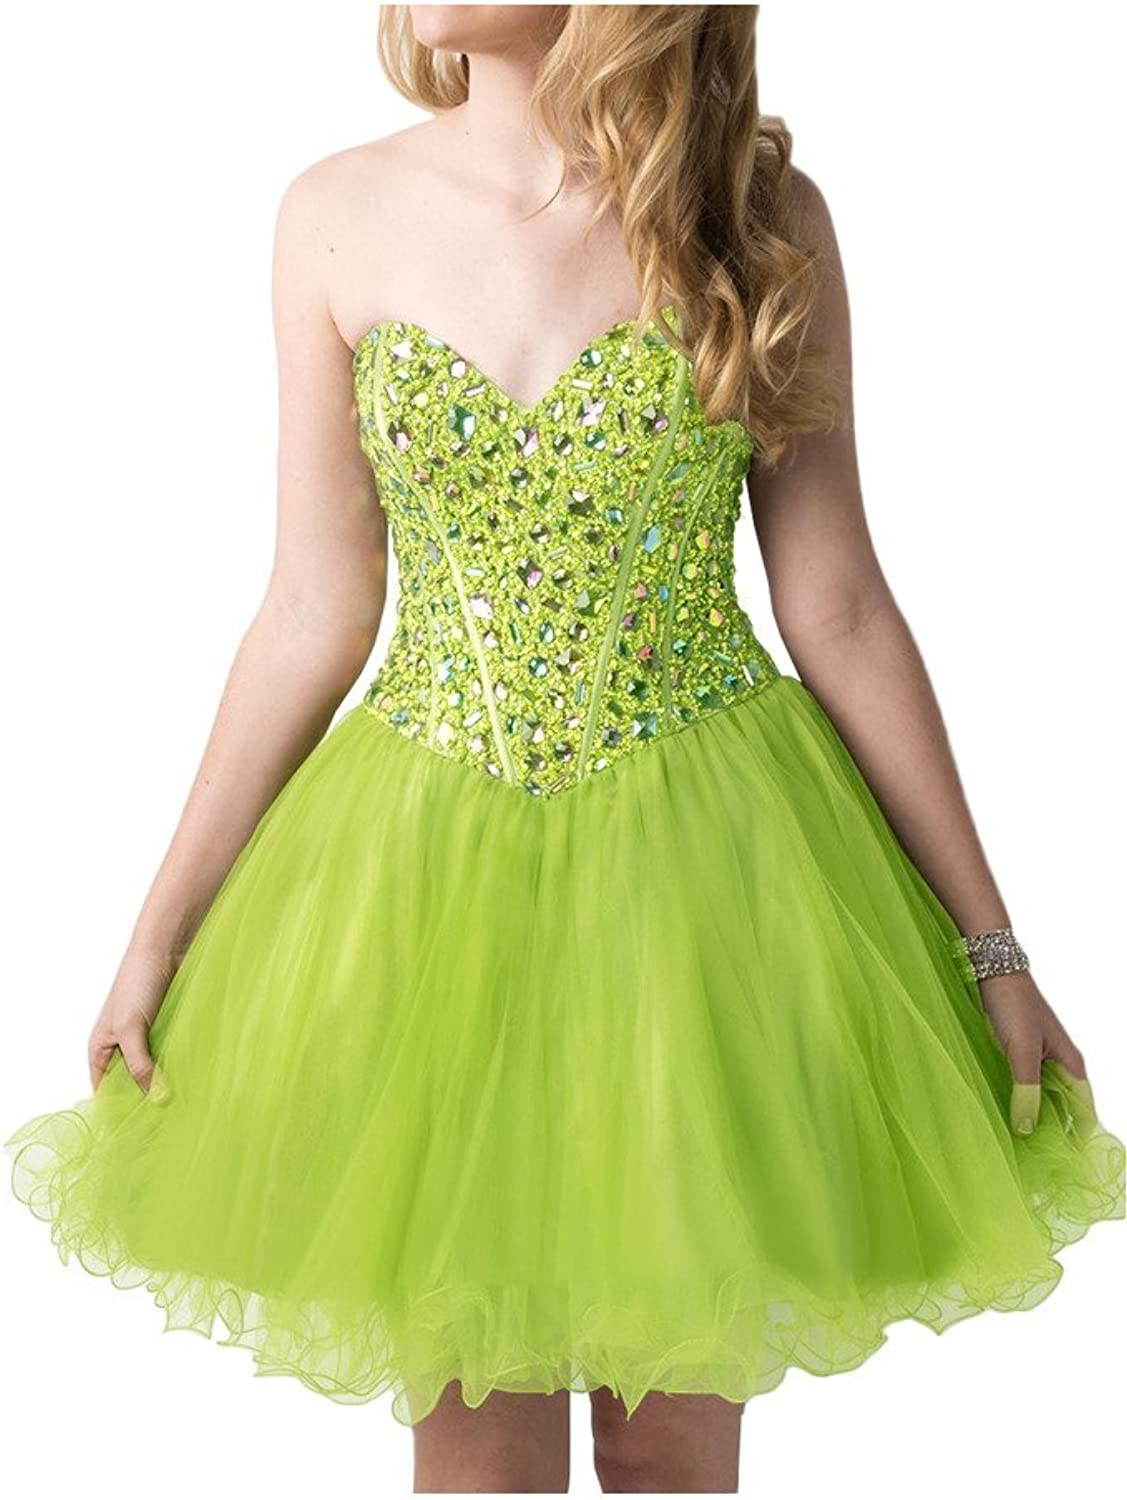 Avril Dress Sweetheart ALine Rhinestone Tulle Homecoming Cocktail Dress Mini